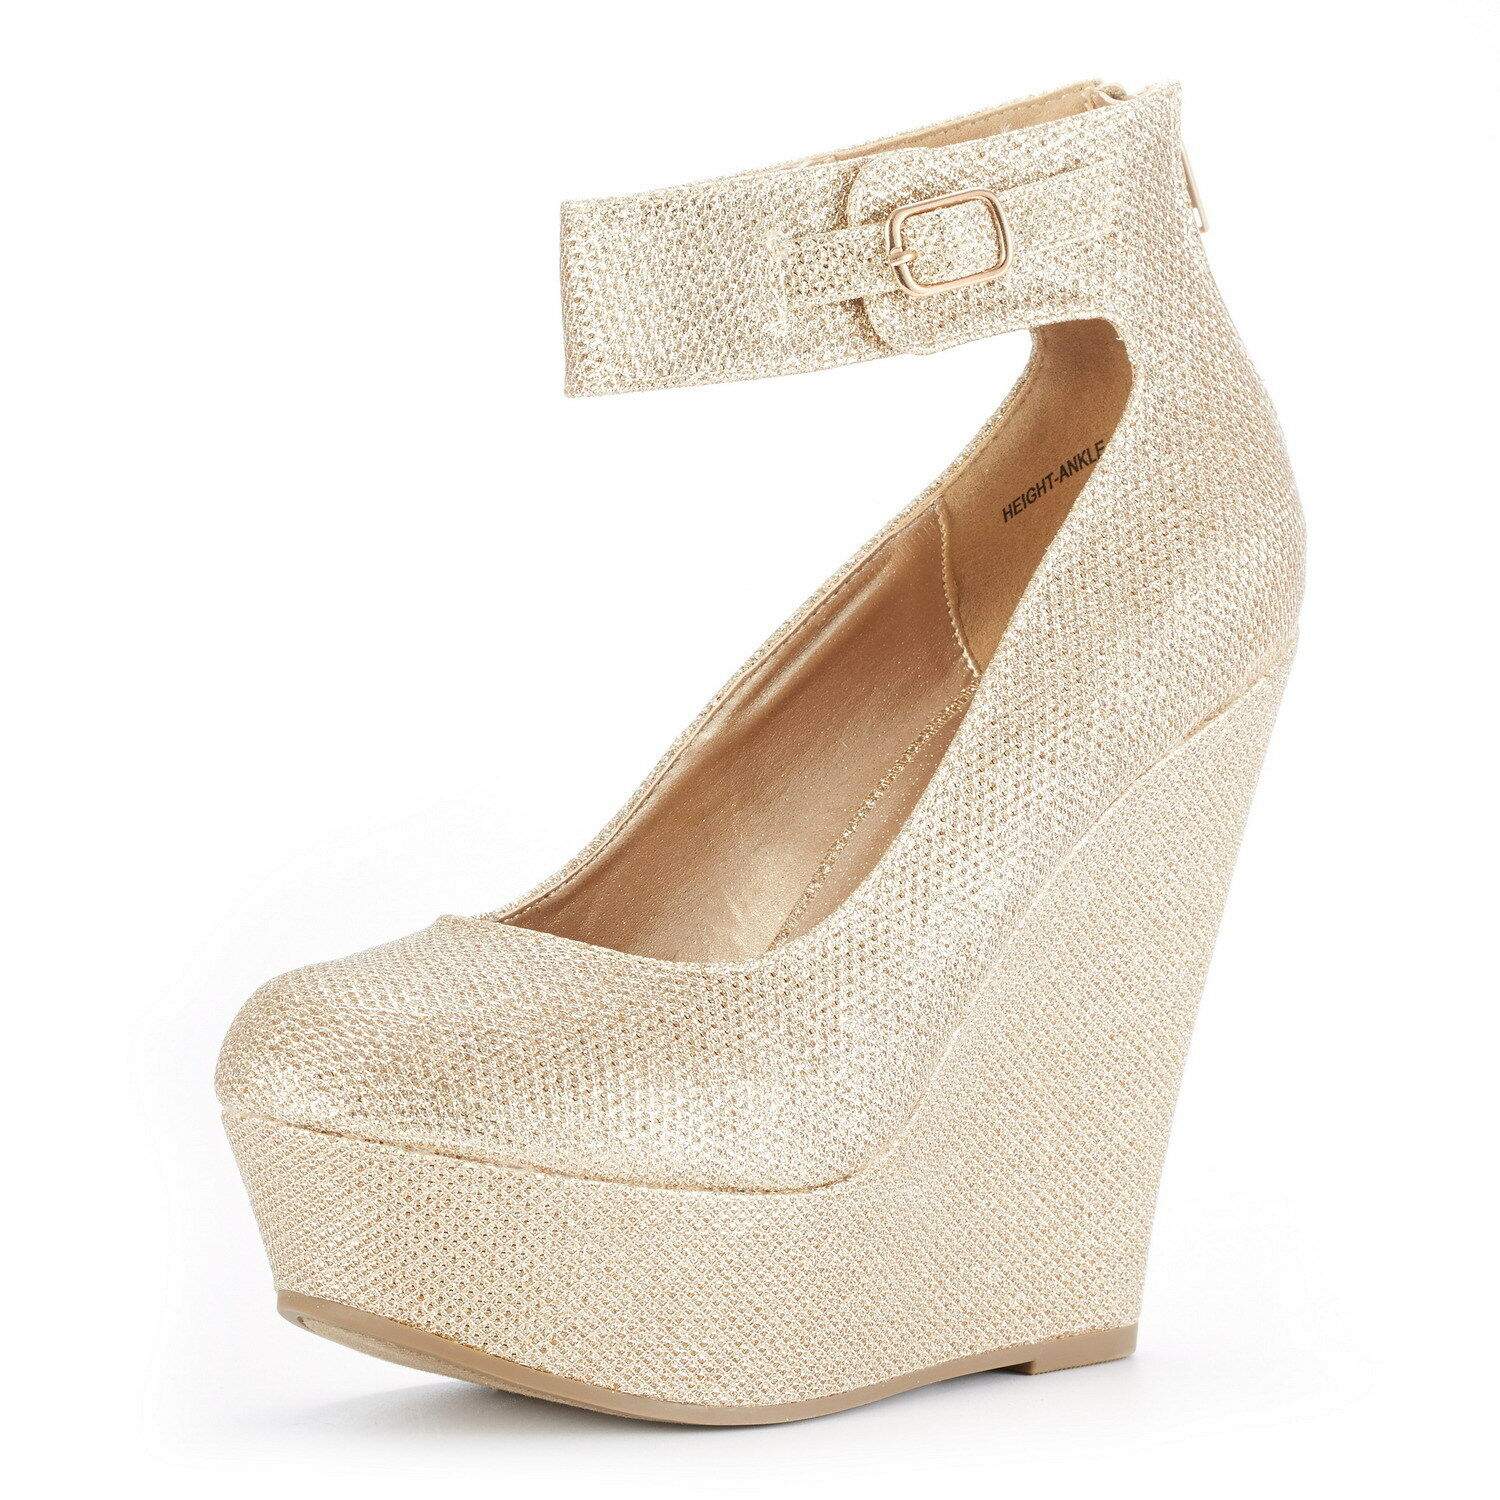 DREAM PAIRS Womens Height-Ankle New Wedding High Wedge Heel Platform Pumps shoes